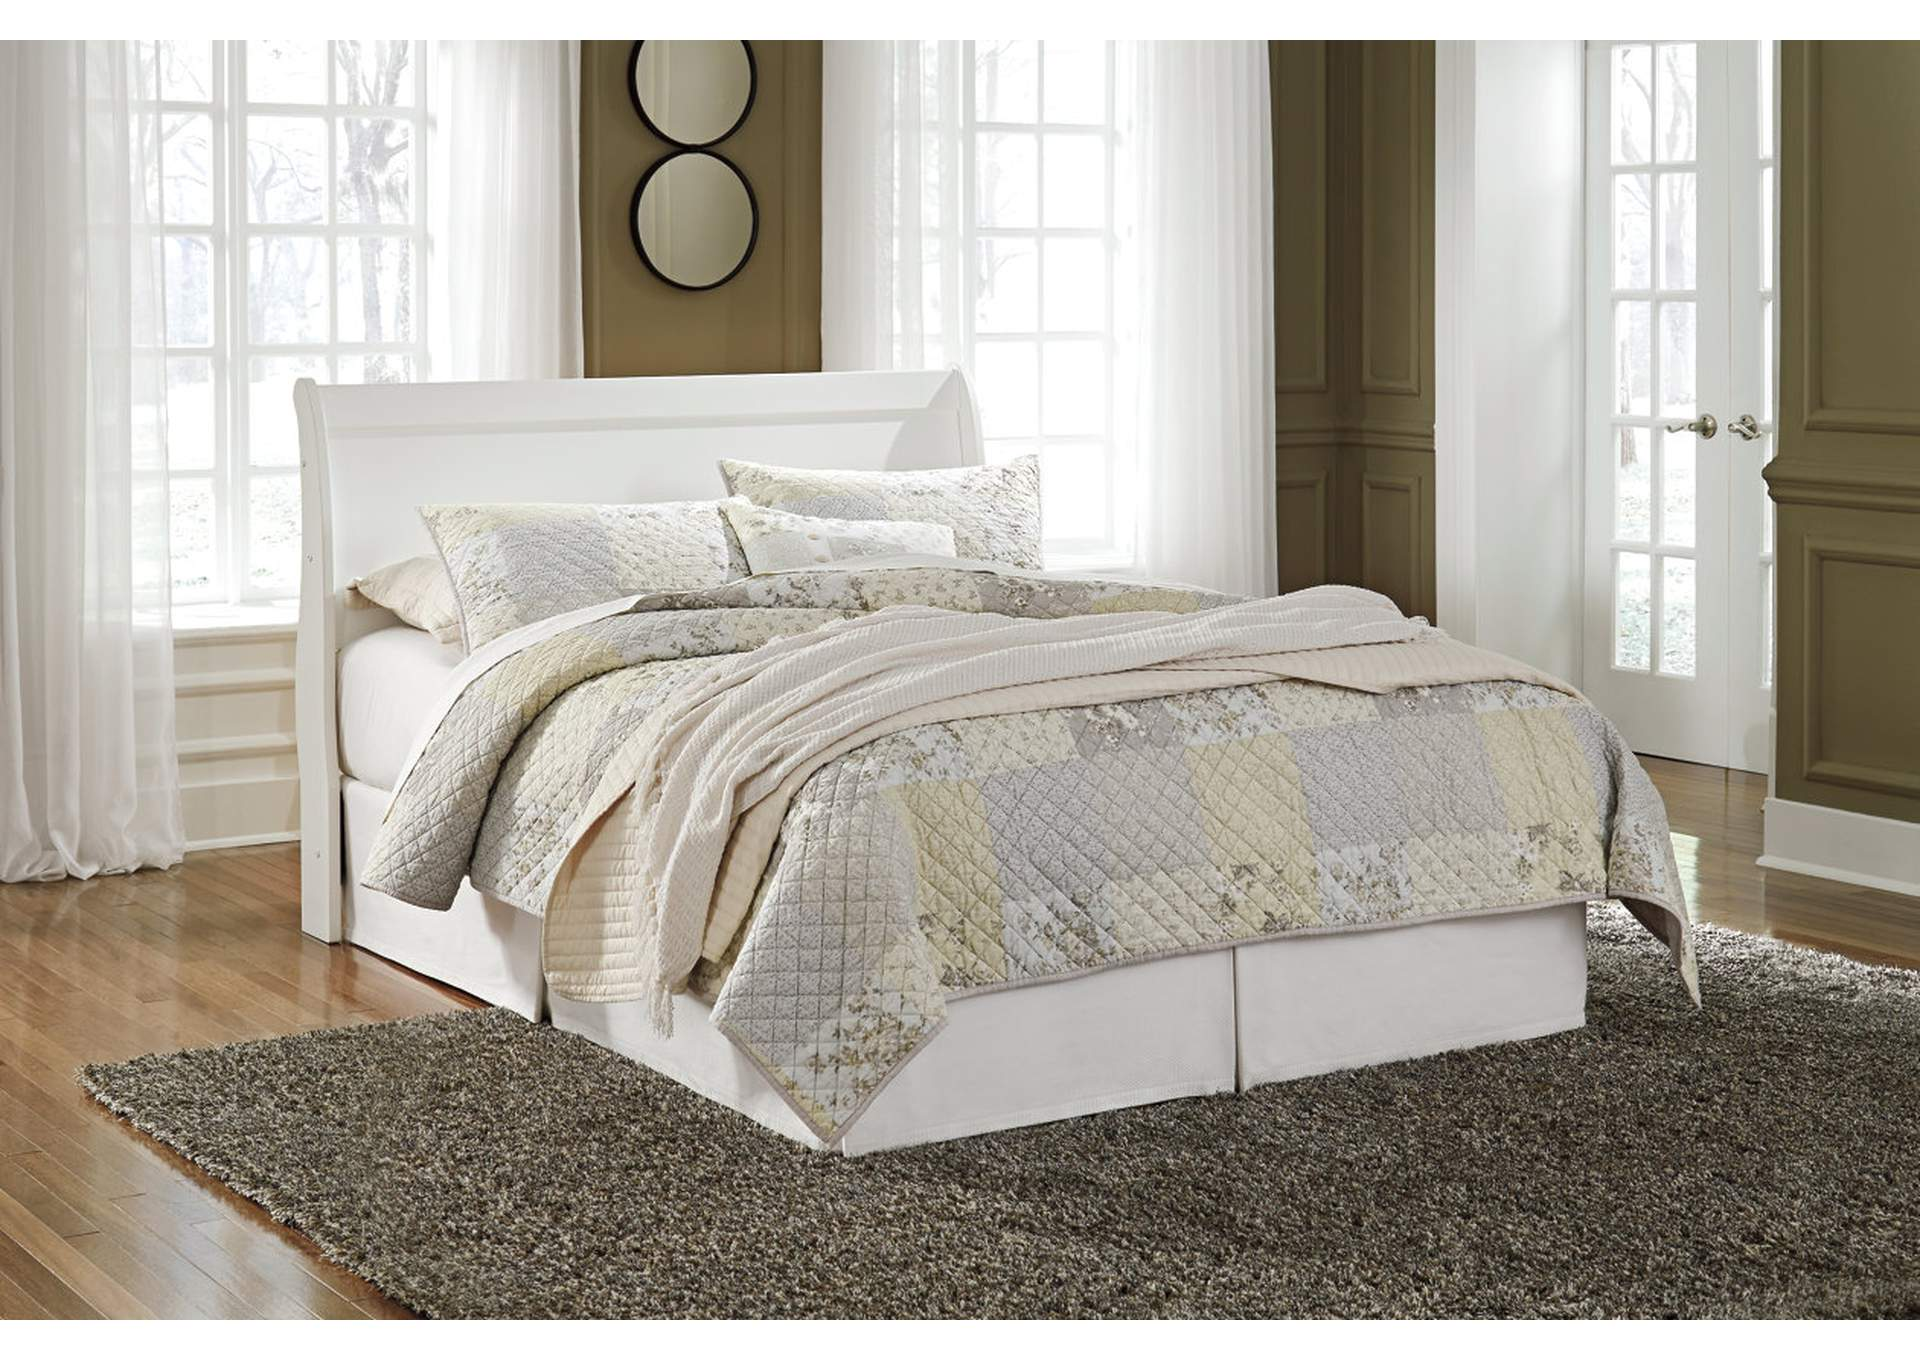 Anarasia White Queen Sleigh Headboard,Direct To Consumer Express